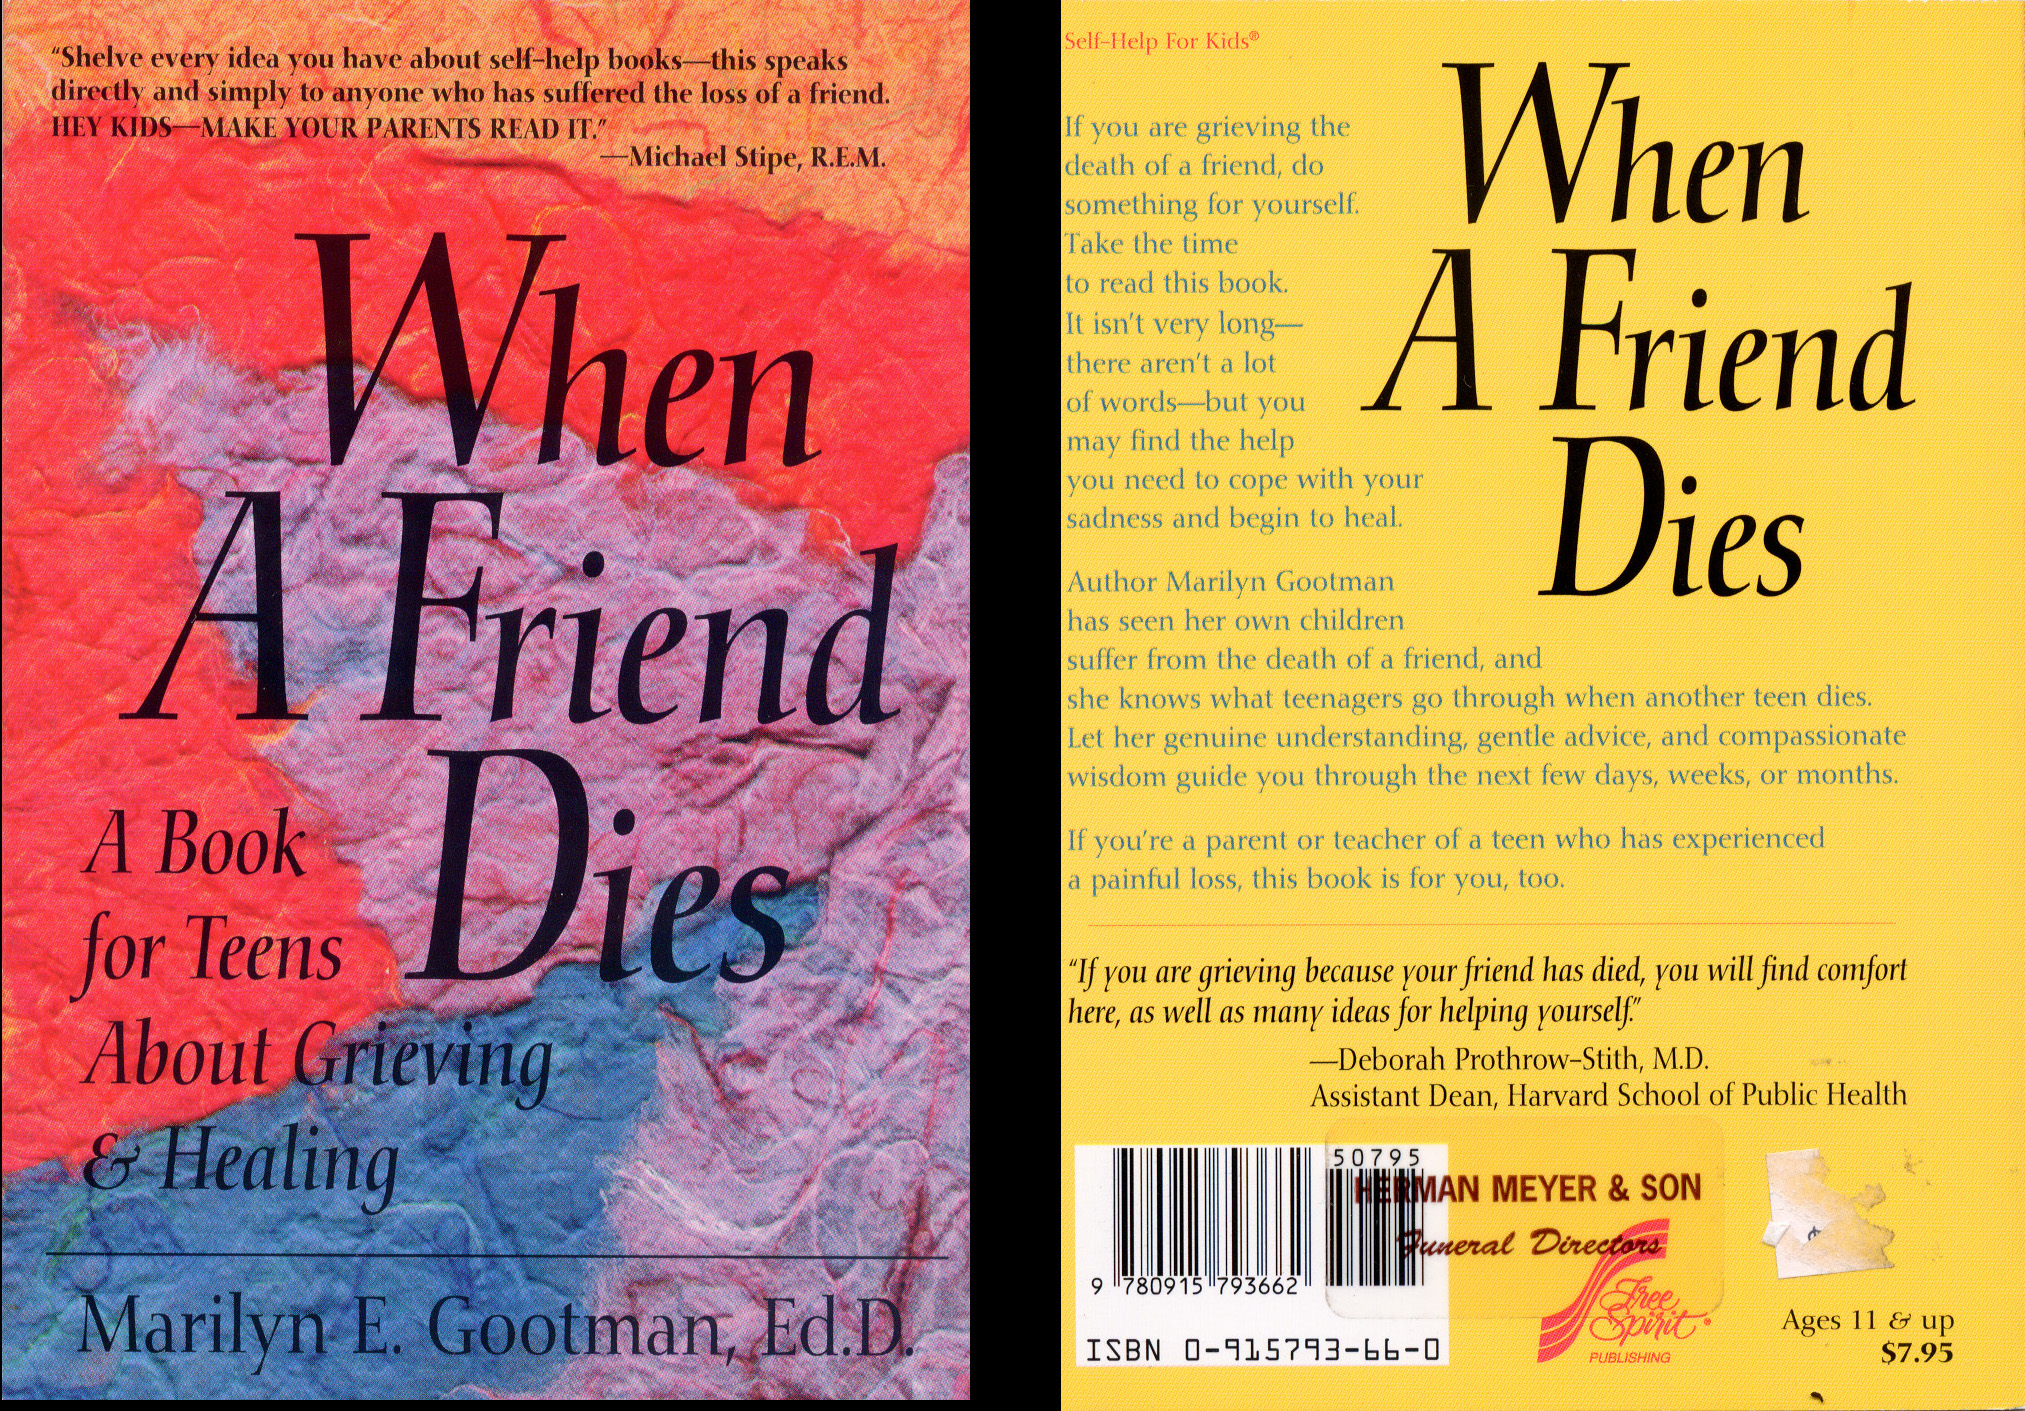 Quotes About Death Of A Friend Quotesgram: Loss Of A Good Friend Quotes. QuotesGram